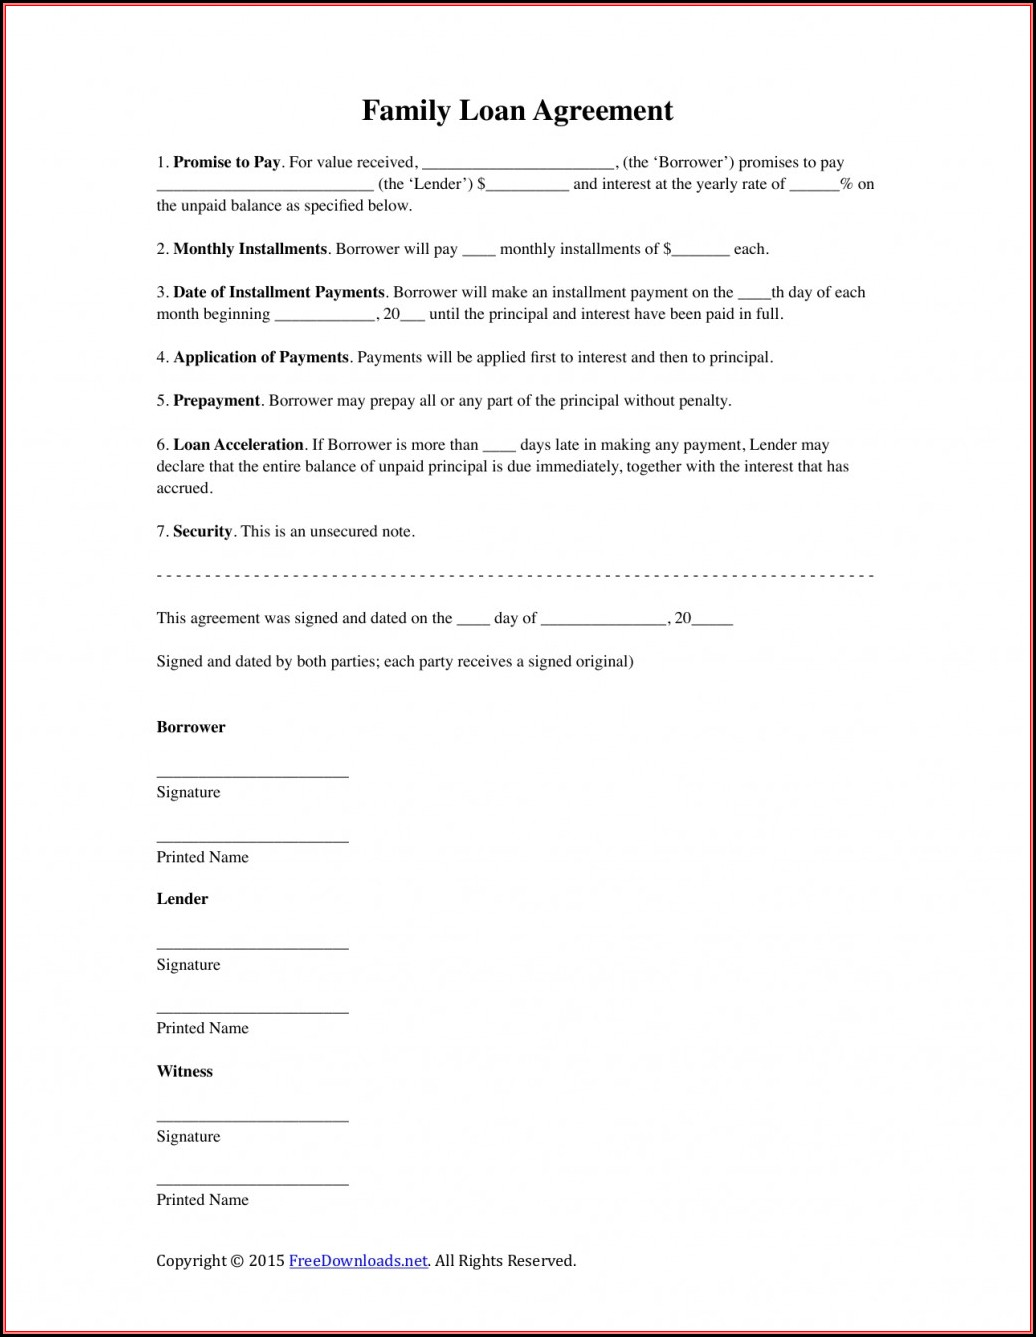 Family Loan Agreement Template Nz